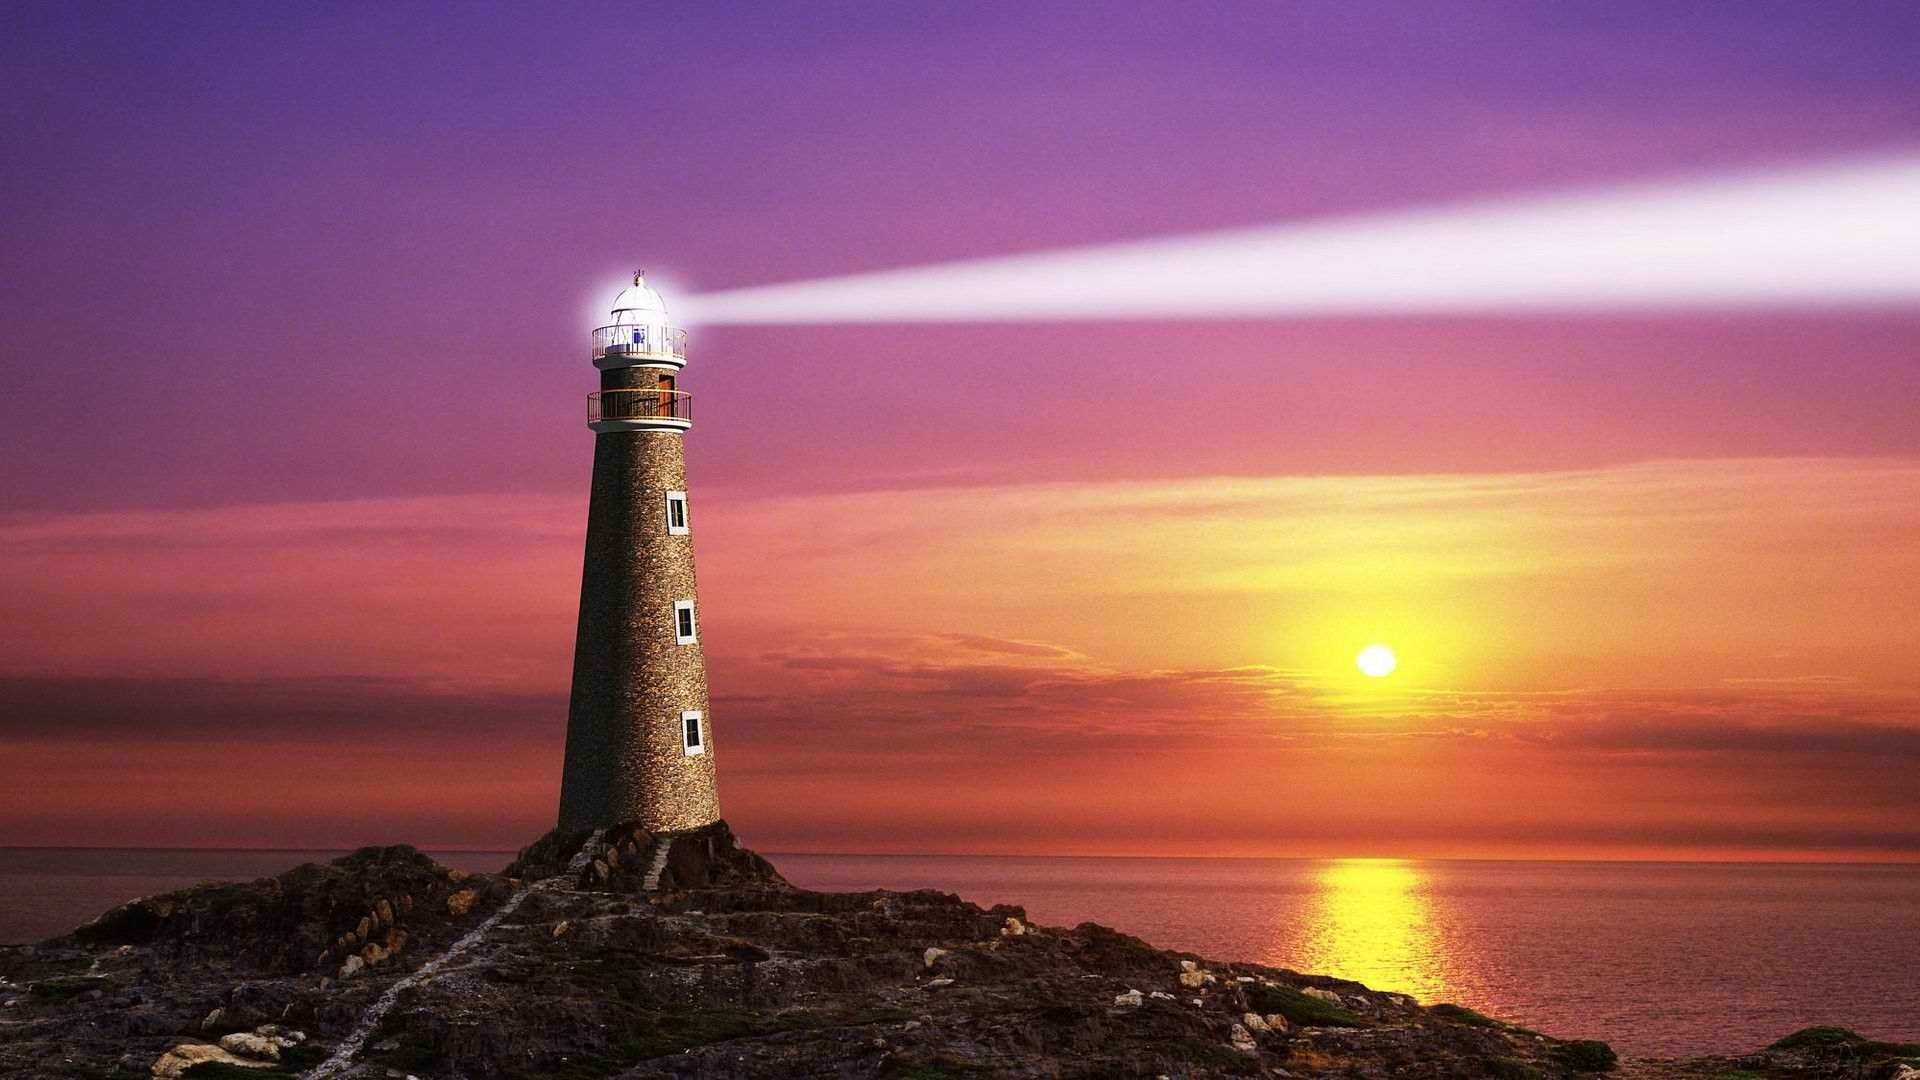 Lighthouses beautiful lighthouse lighthouse pictures